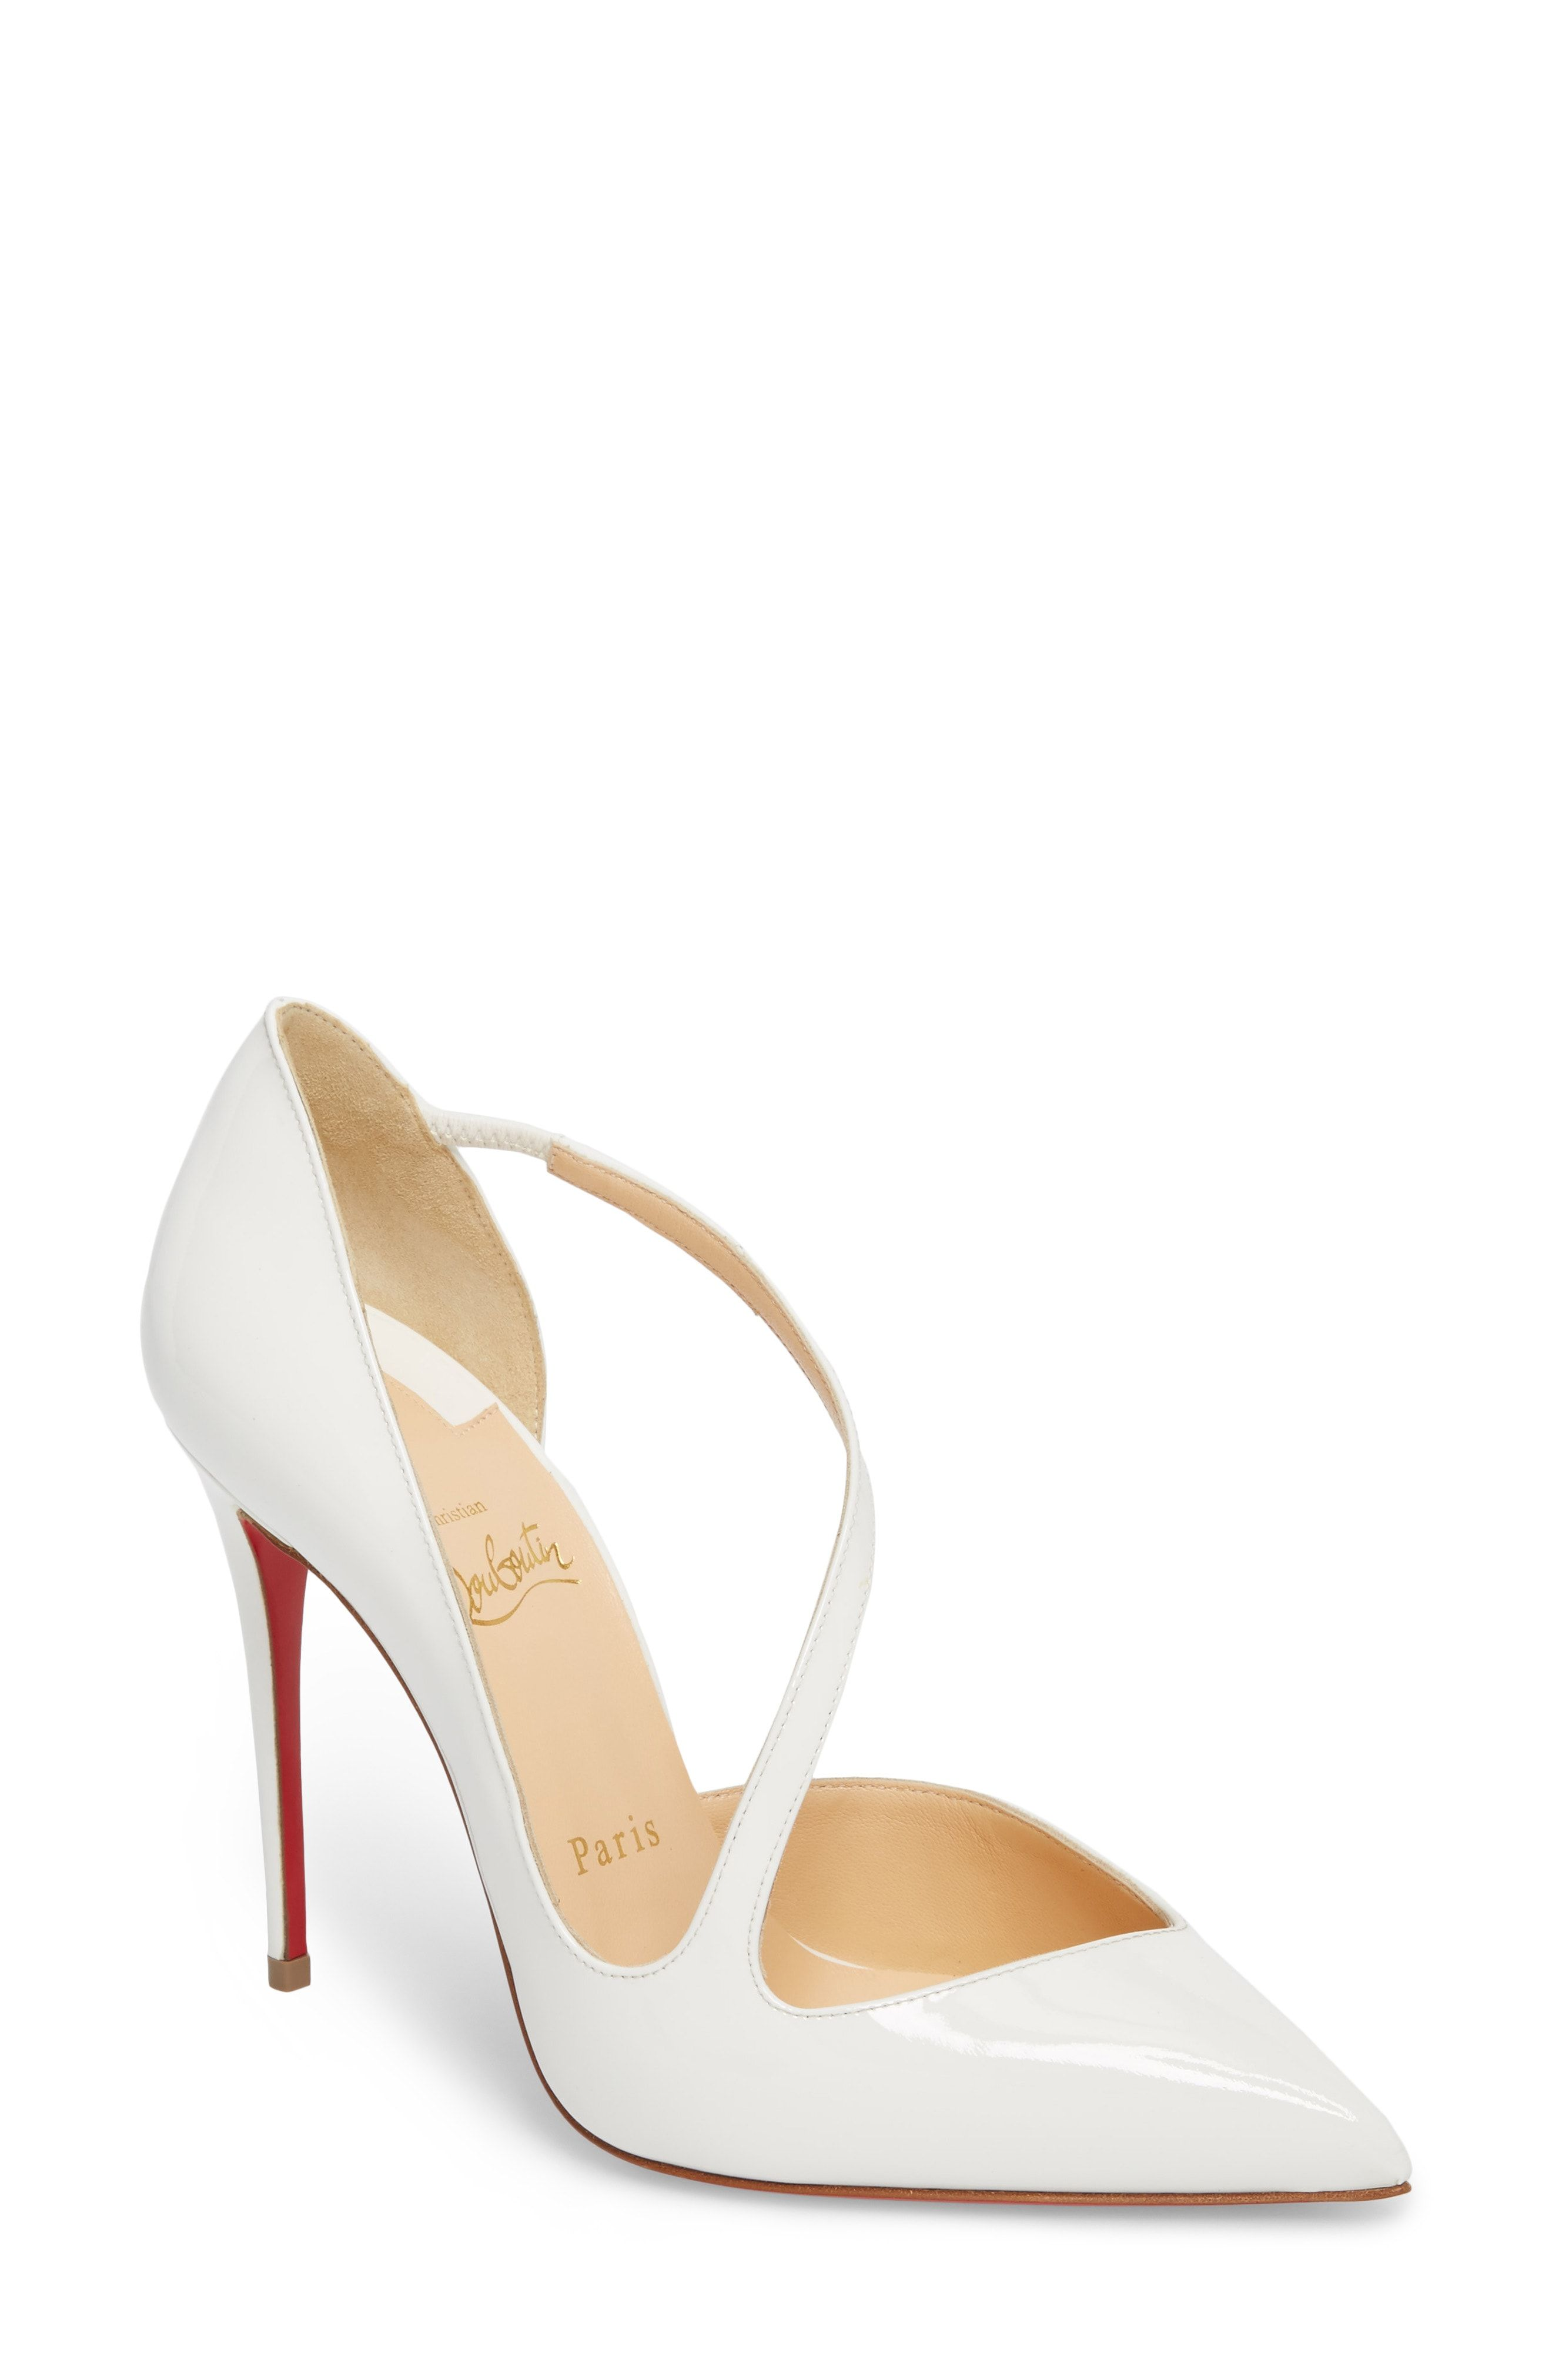 59e7ee100a4a Christian Louboutin Strappy Half d Orsay Pump